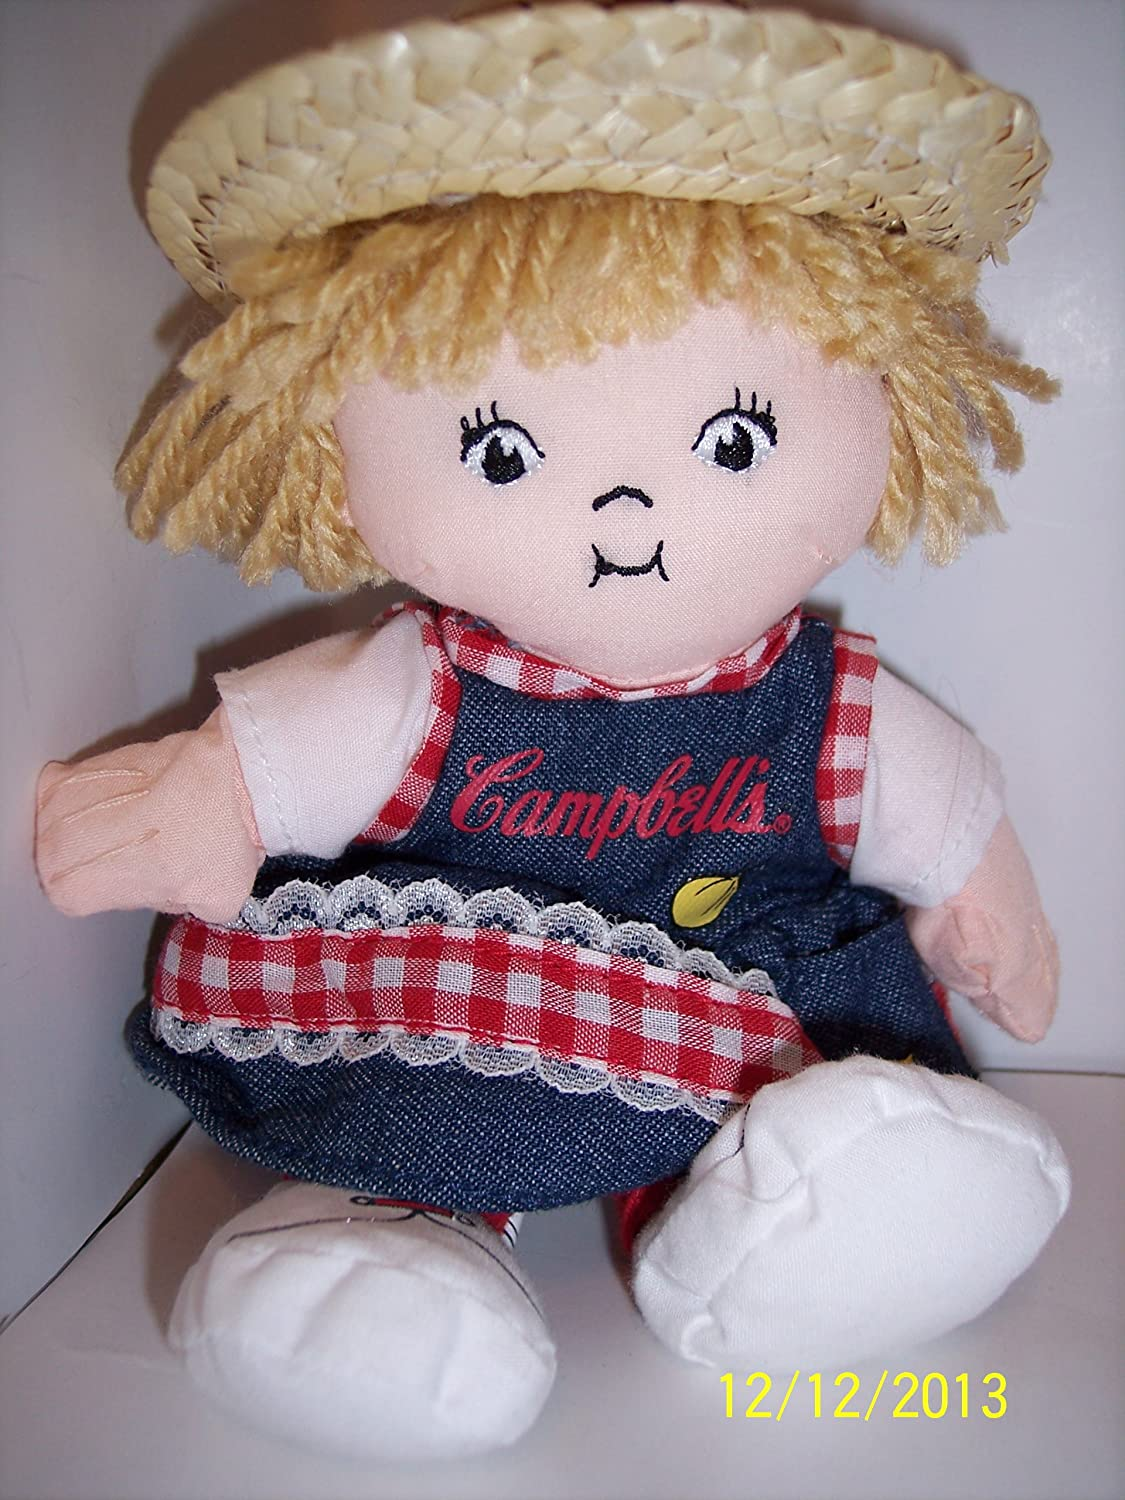 2000 CAMPBELL SOUP KIDS 7\' PLUSH DOLL CAMPBELLS SOUP